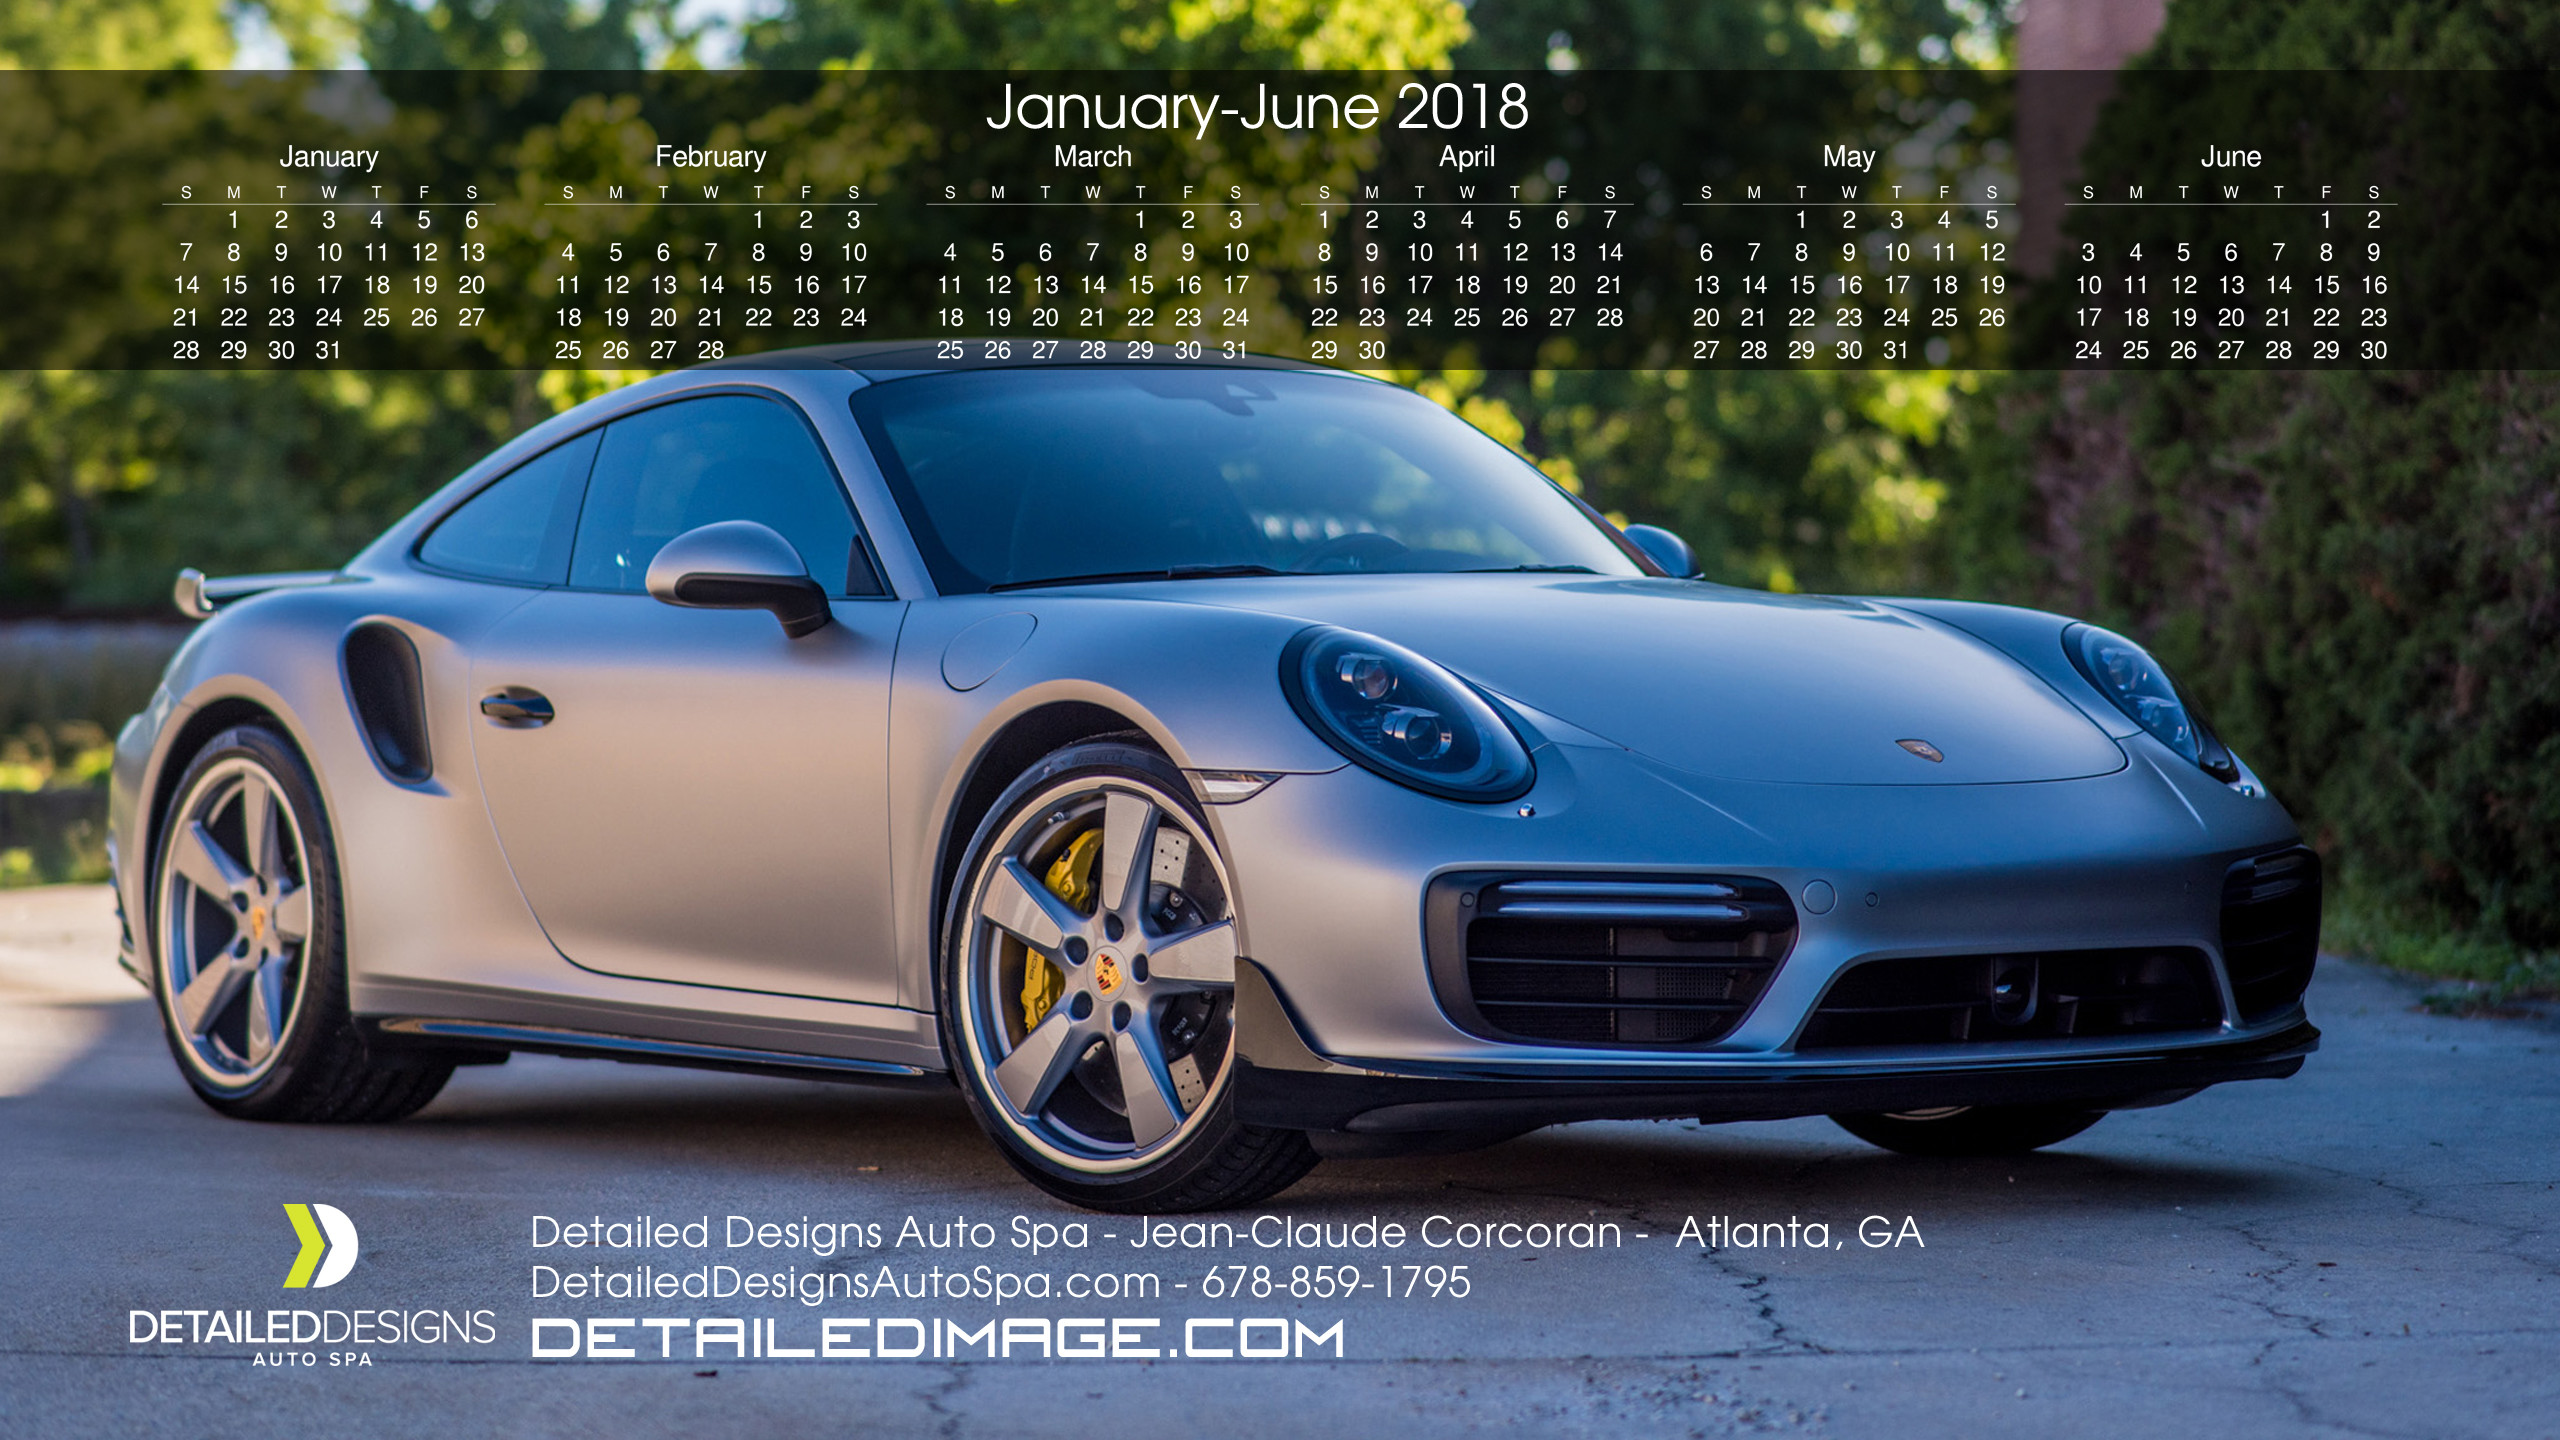 2560x1440 January - June 2018. Download Calendar | Download Wallpaper